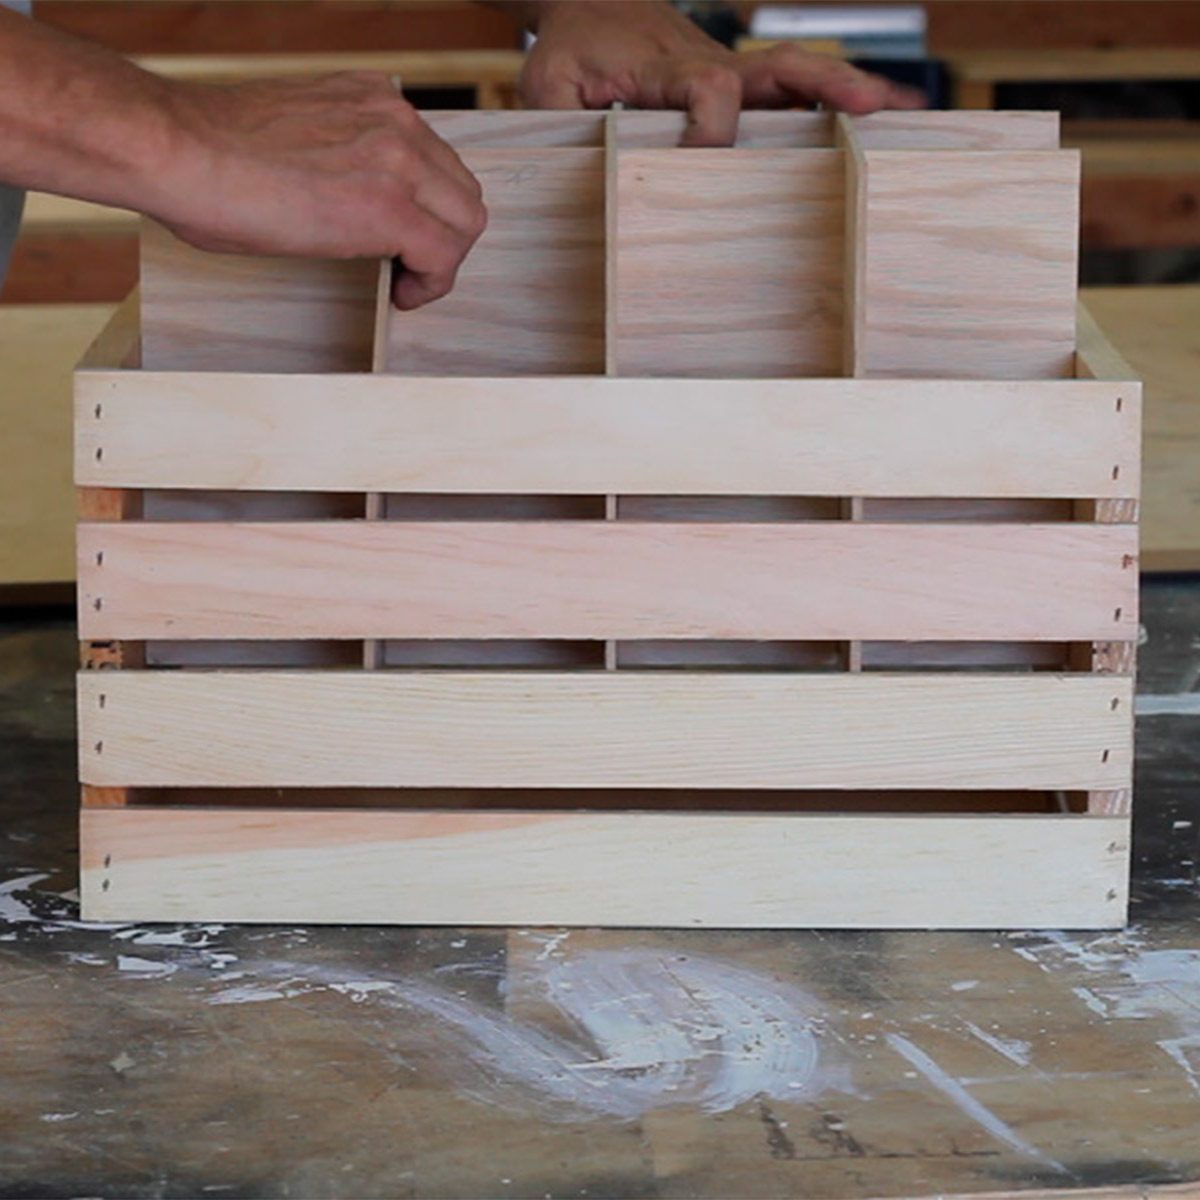 dividers in wine crate